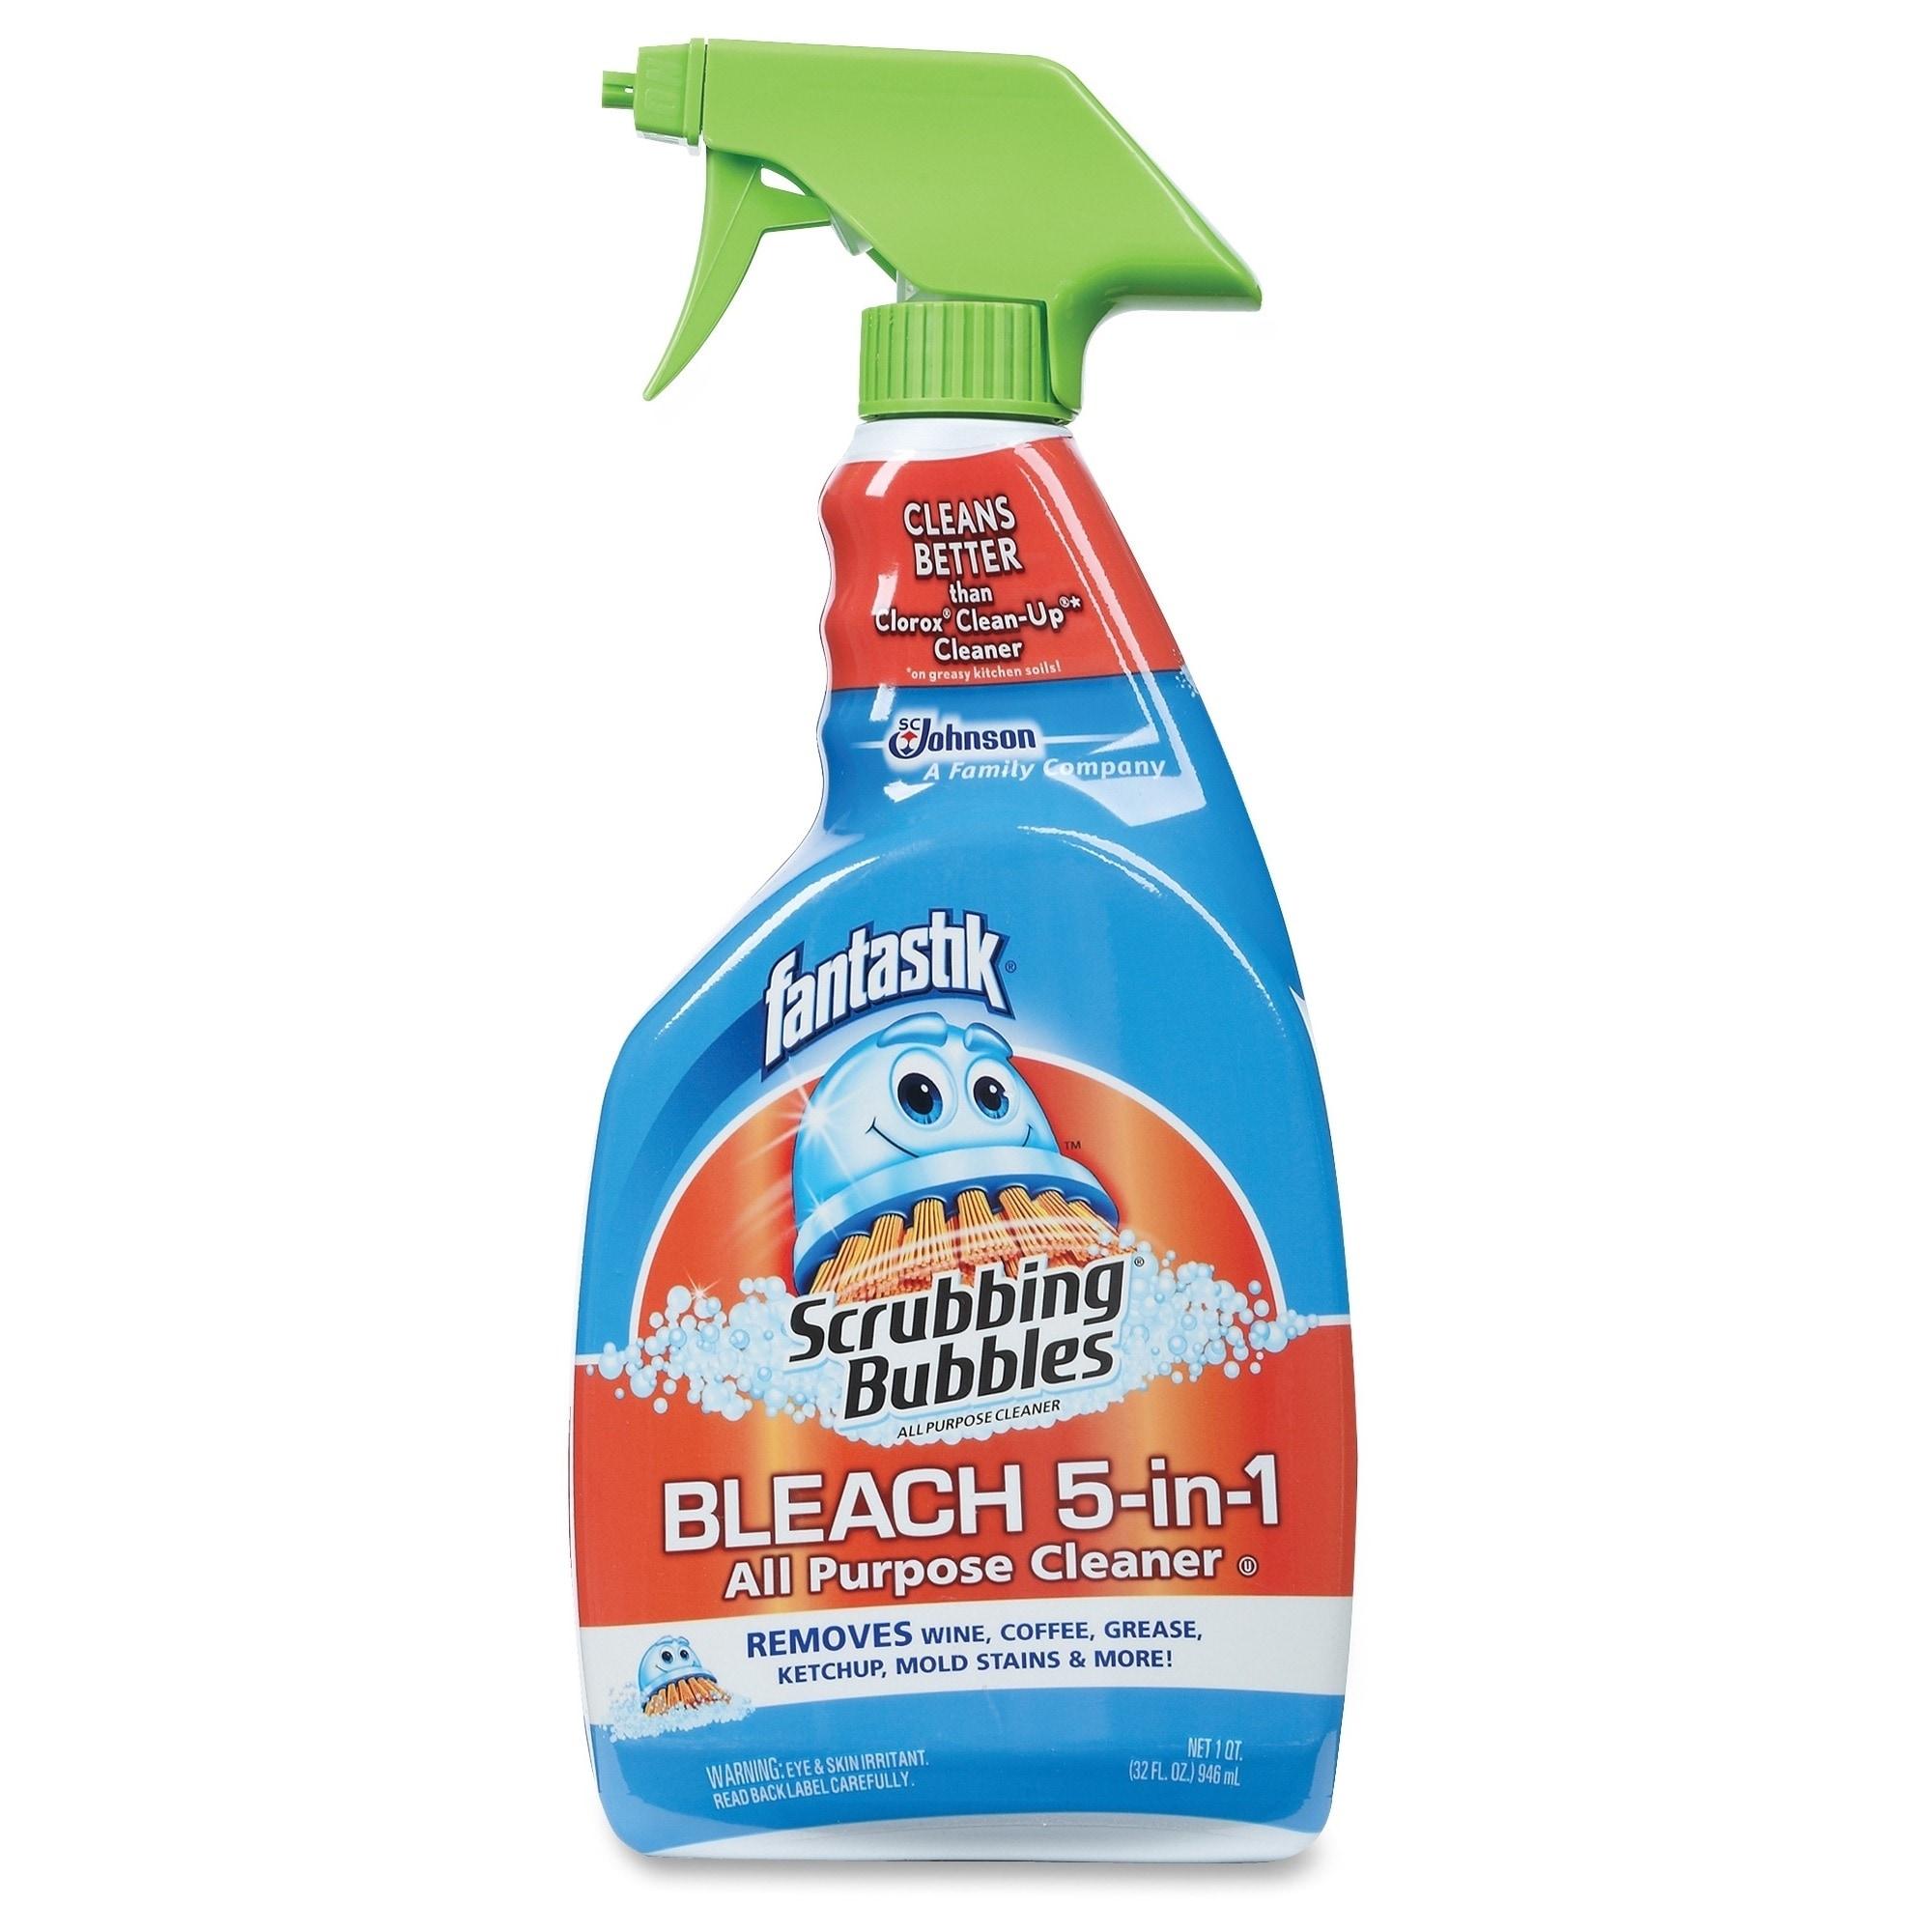 Scrubbing Bubbles Bleach 5-in-1 All Purpose Cleaner - Cle...